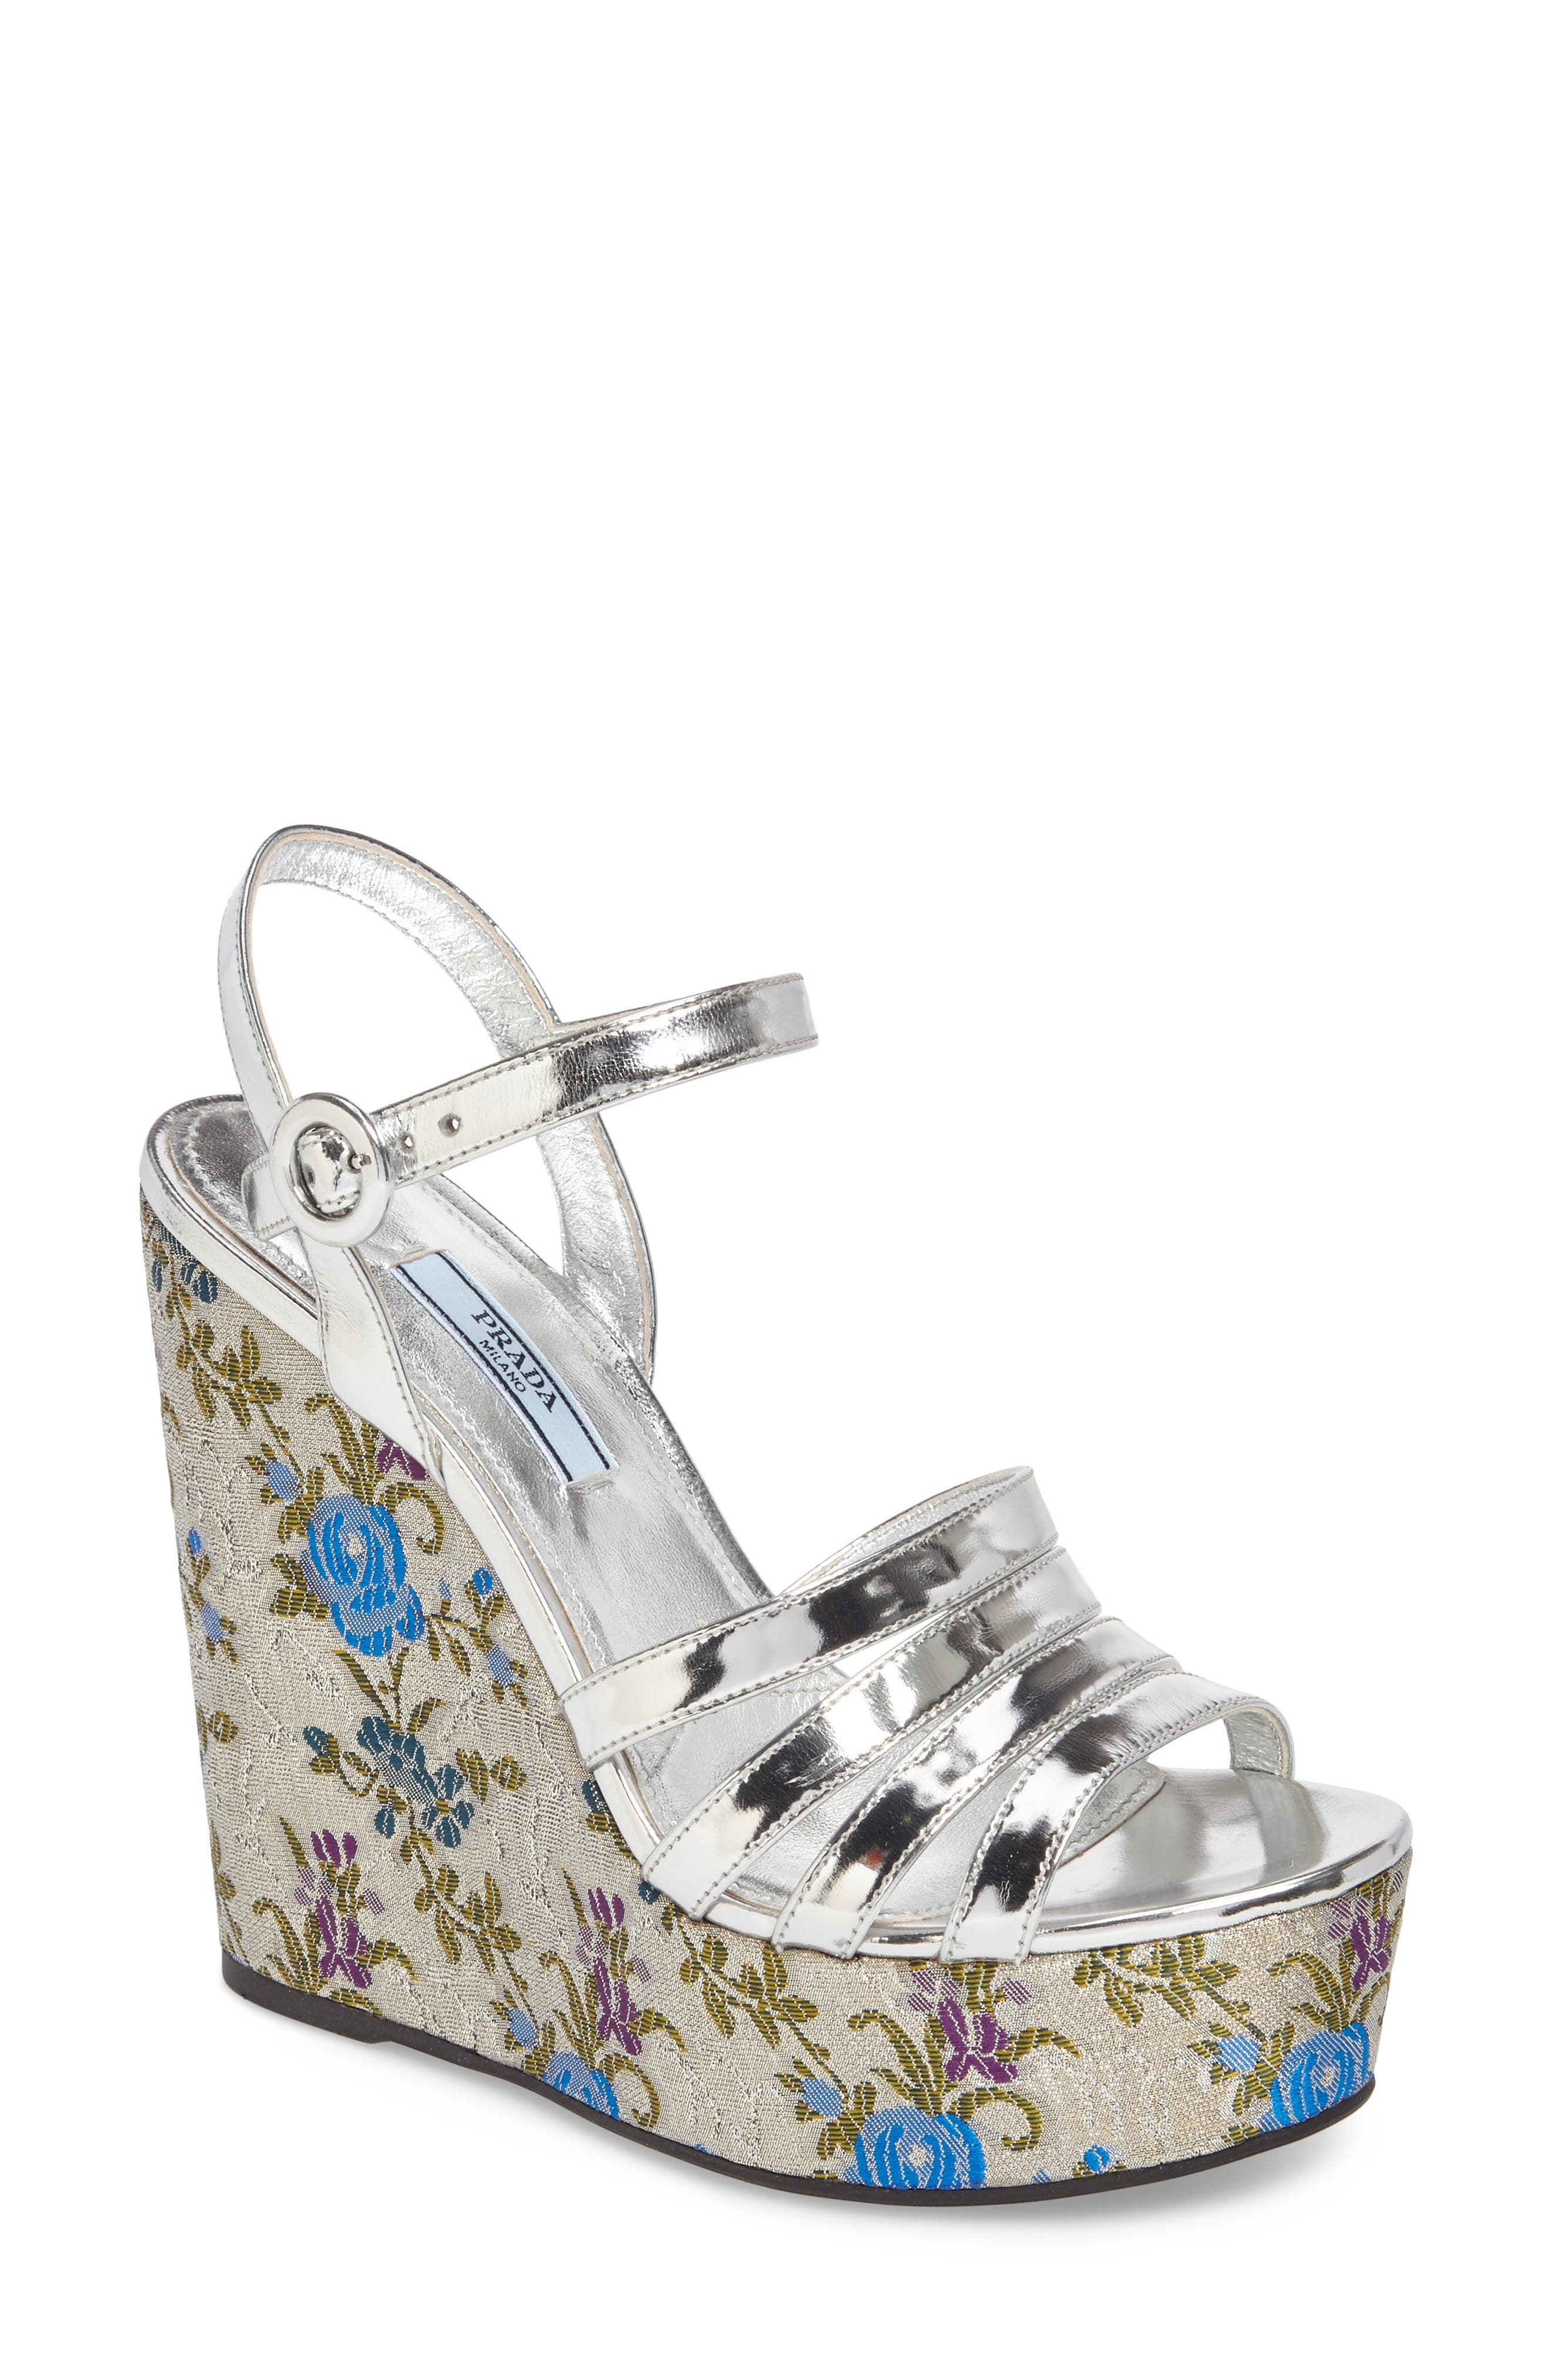 Floral Wedge Platform Sandals,                             Main thumbnail 1, color,                             041